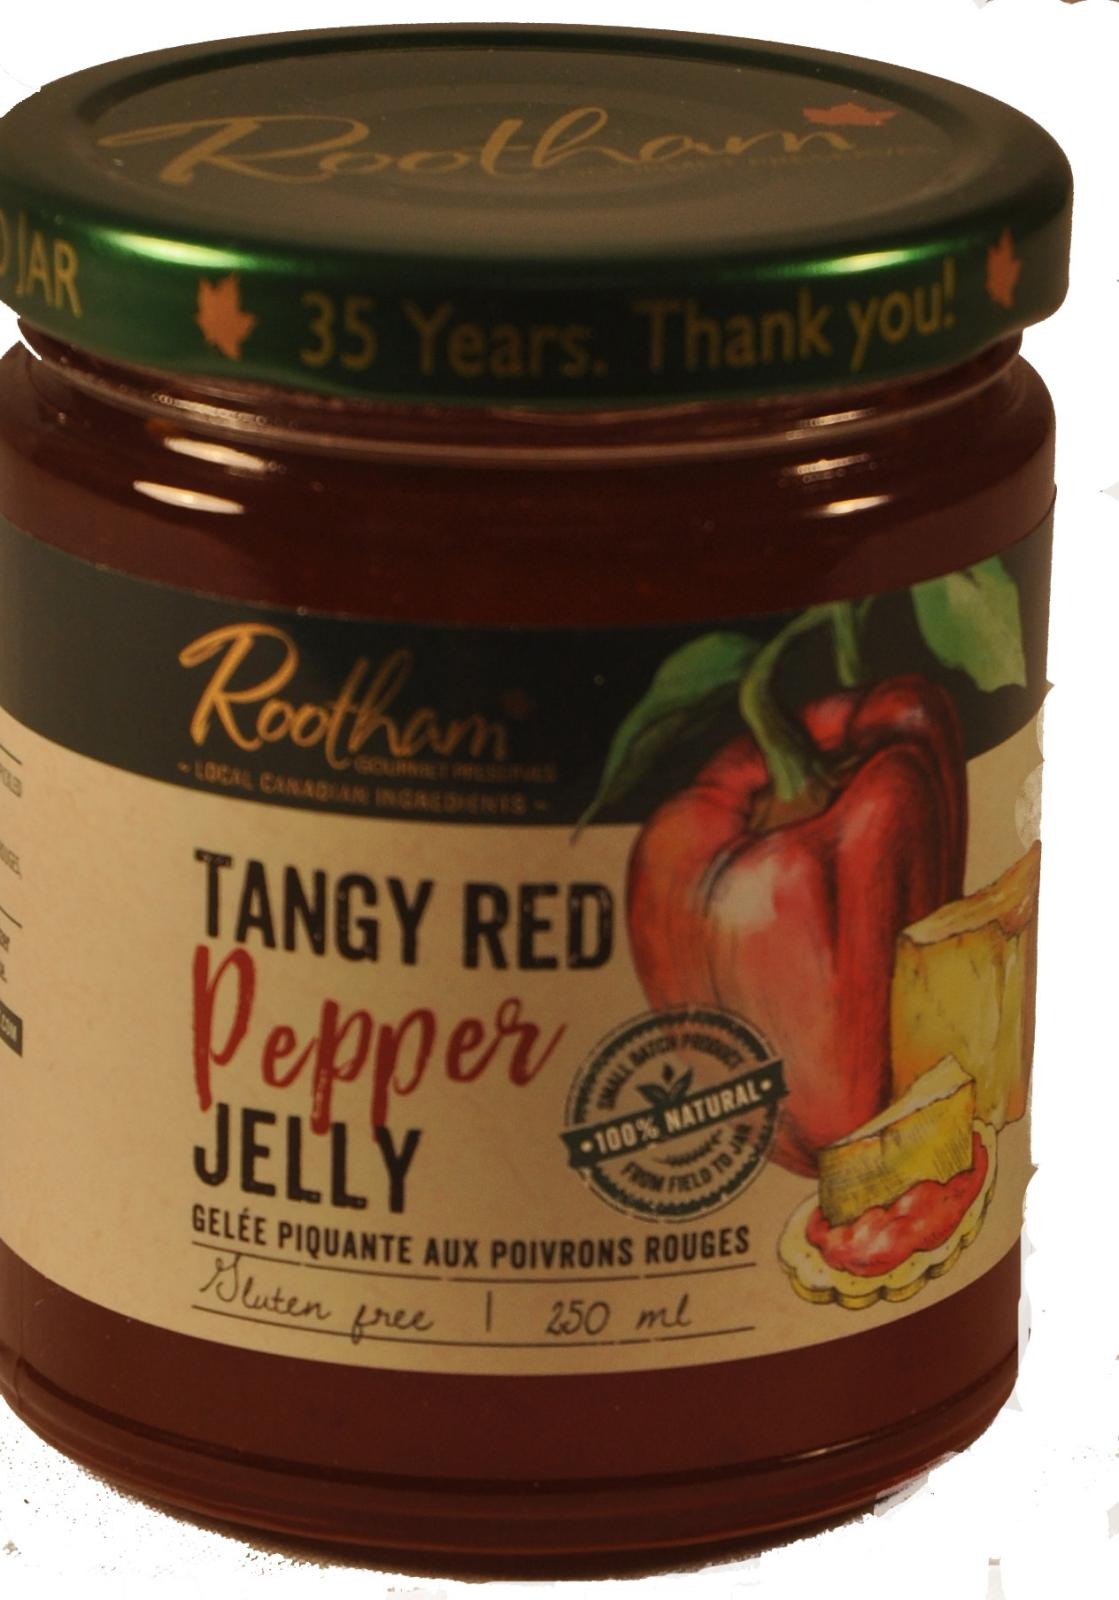 TANGY RED PEPPER JELLY